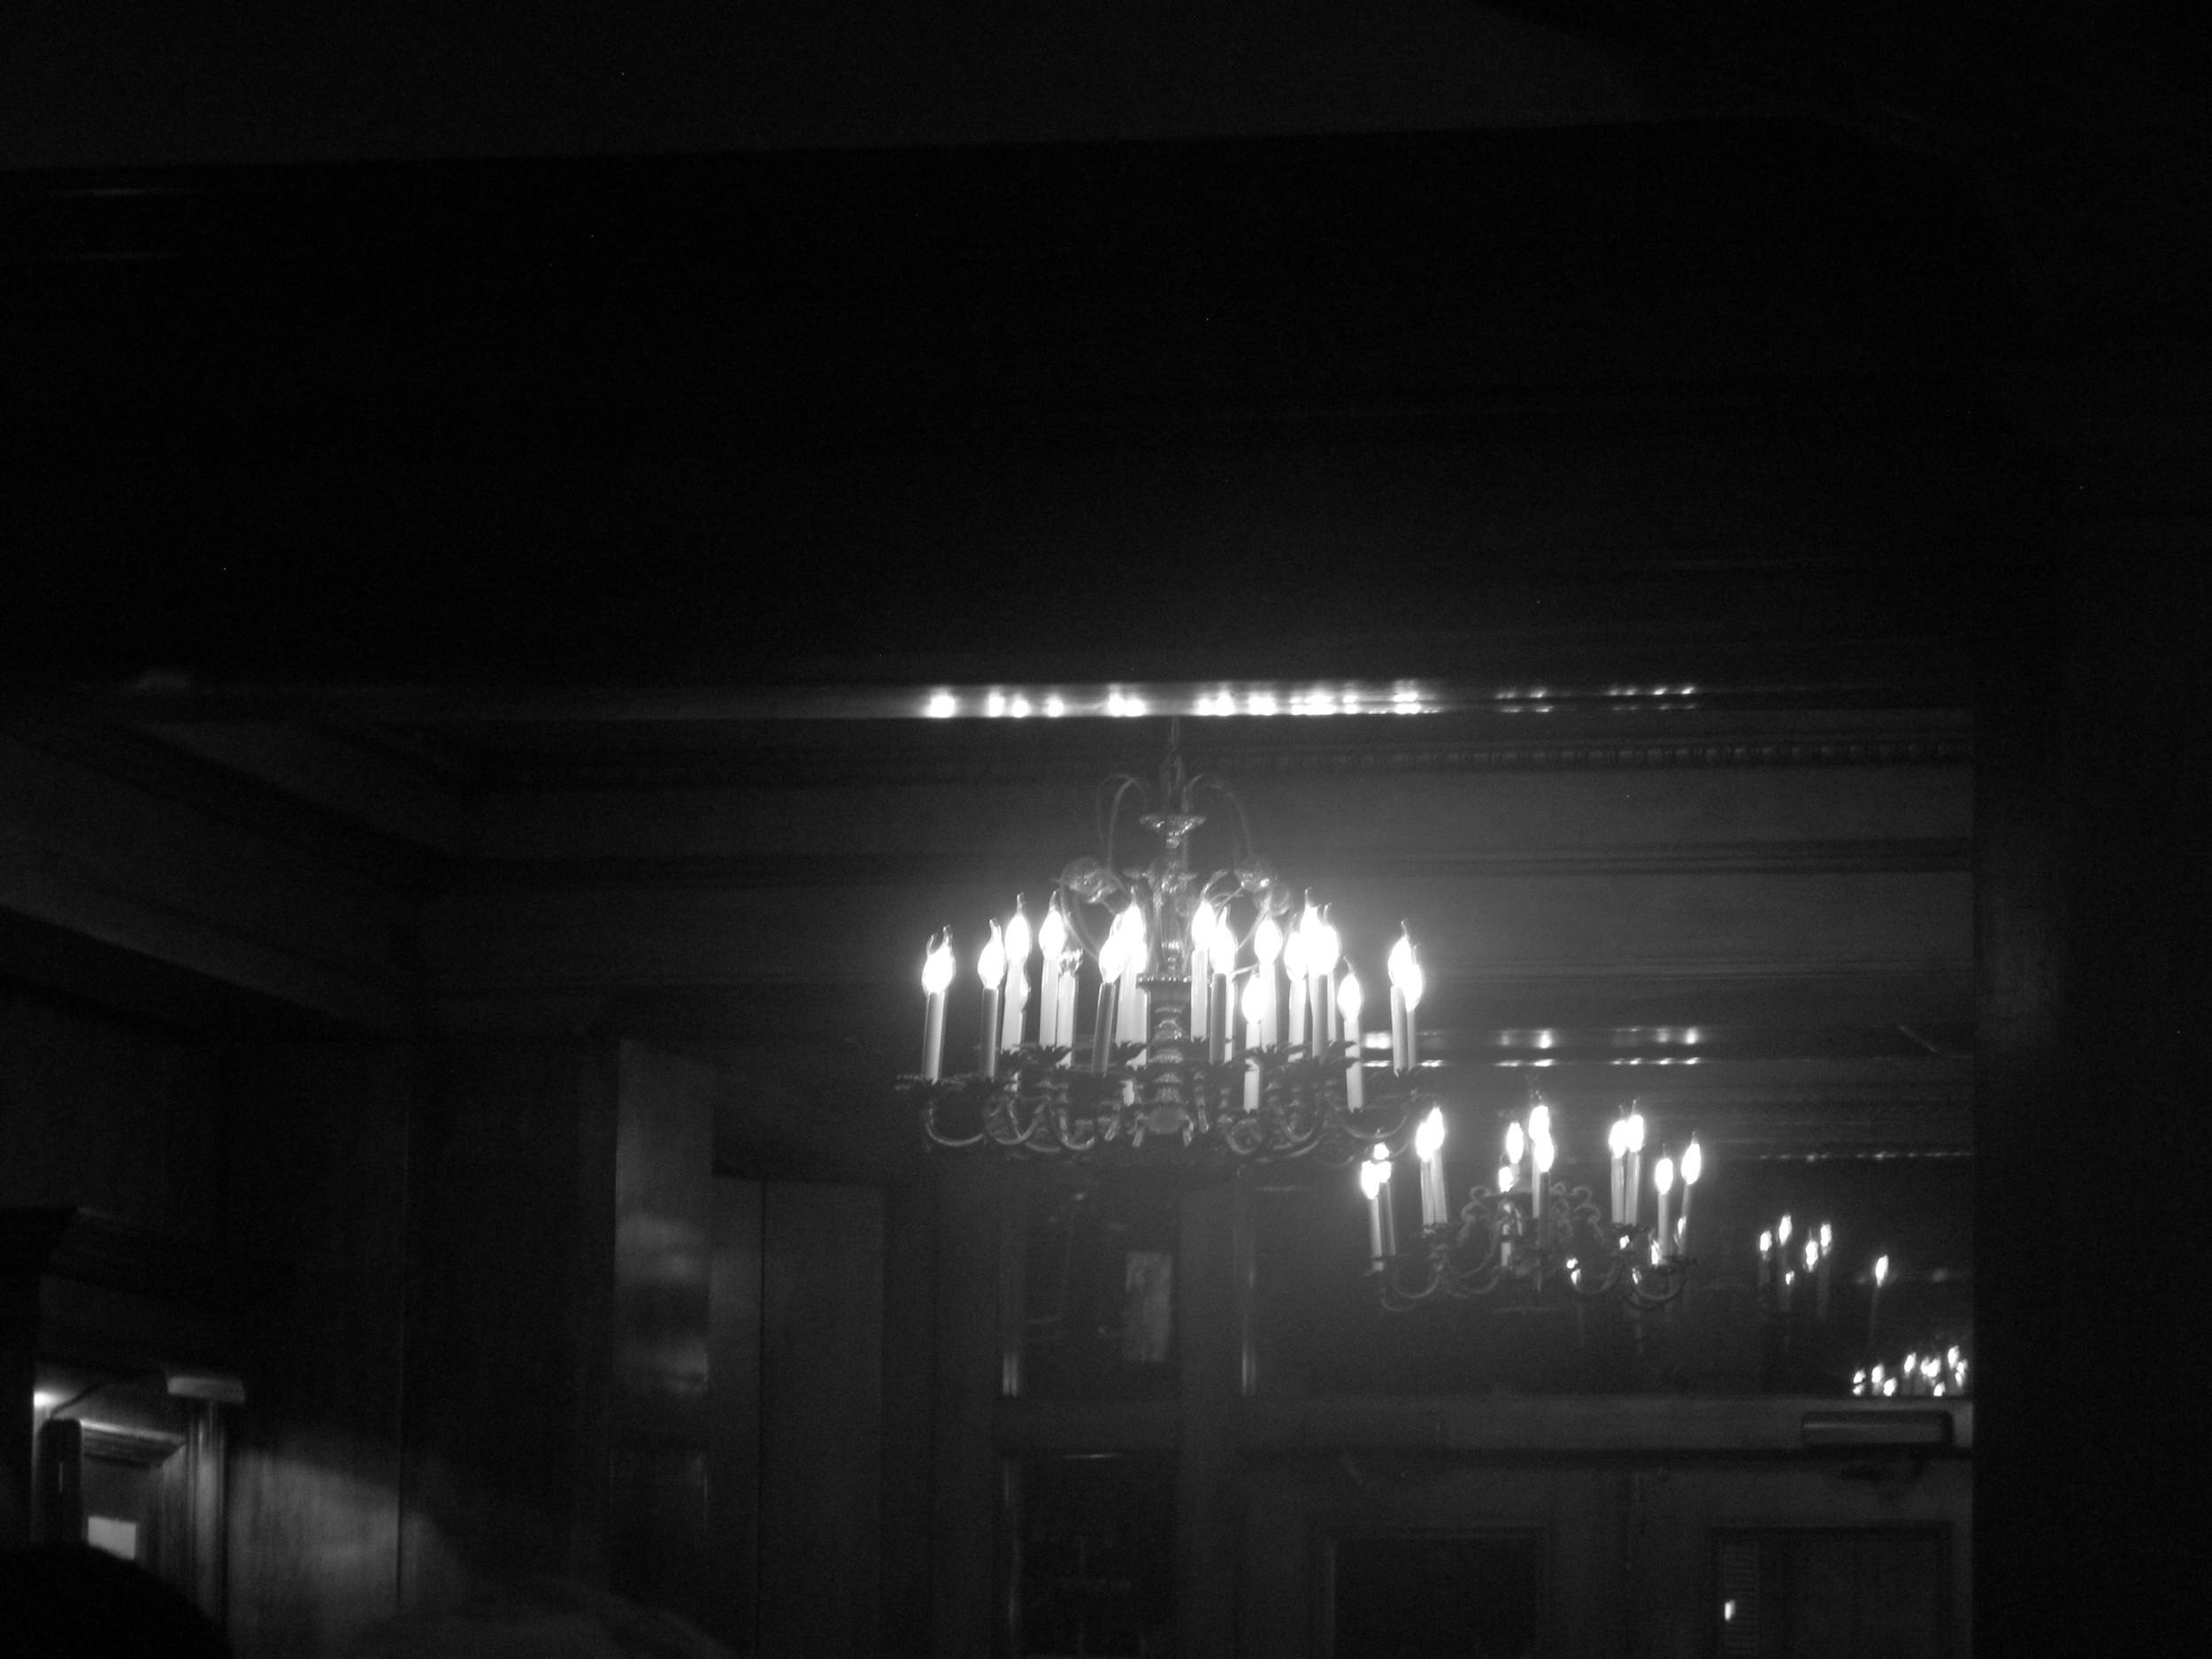 Chandelier in a hotel lobby, black and white photography.